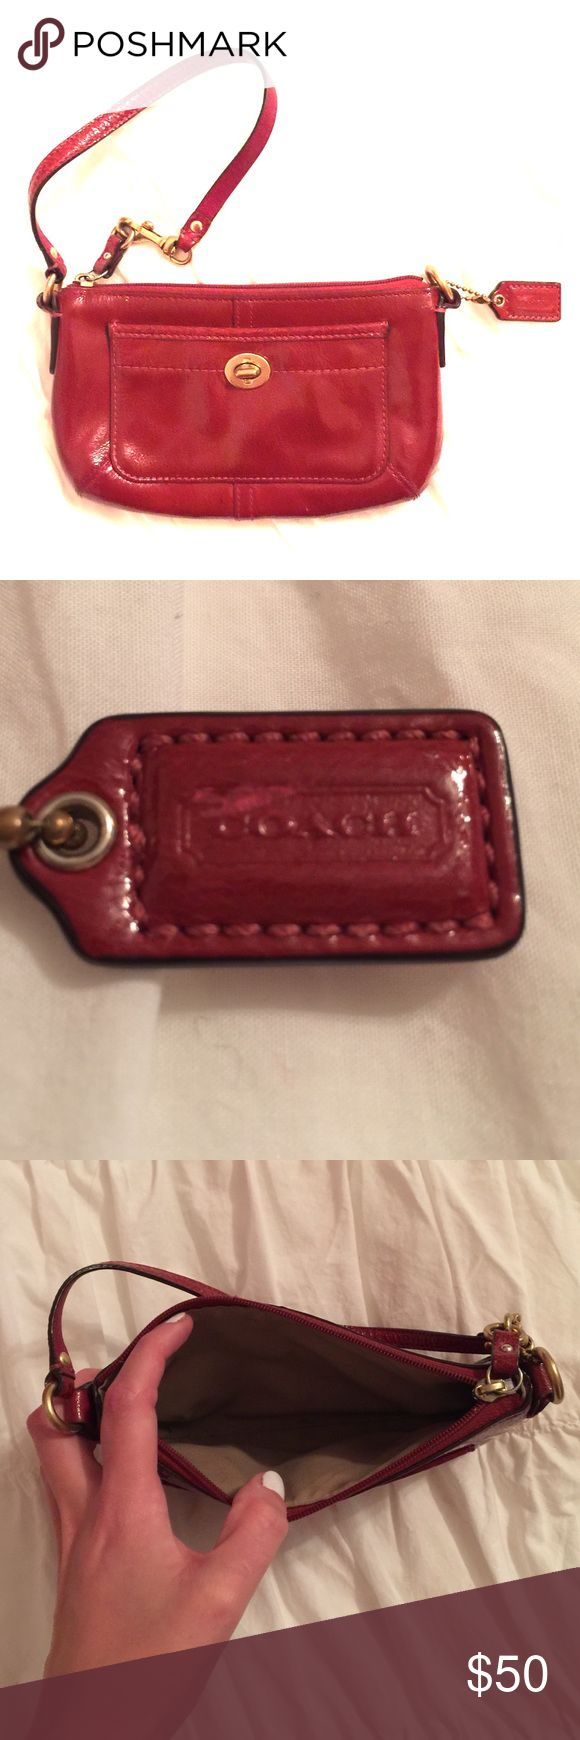 Authentic Coach Clutch in red! Small coach clutch in red. I've used it a few times, but no damage to the inside and a small scuff on the coach label. Coach Bags Clutches & Wristlets